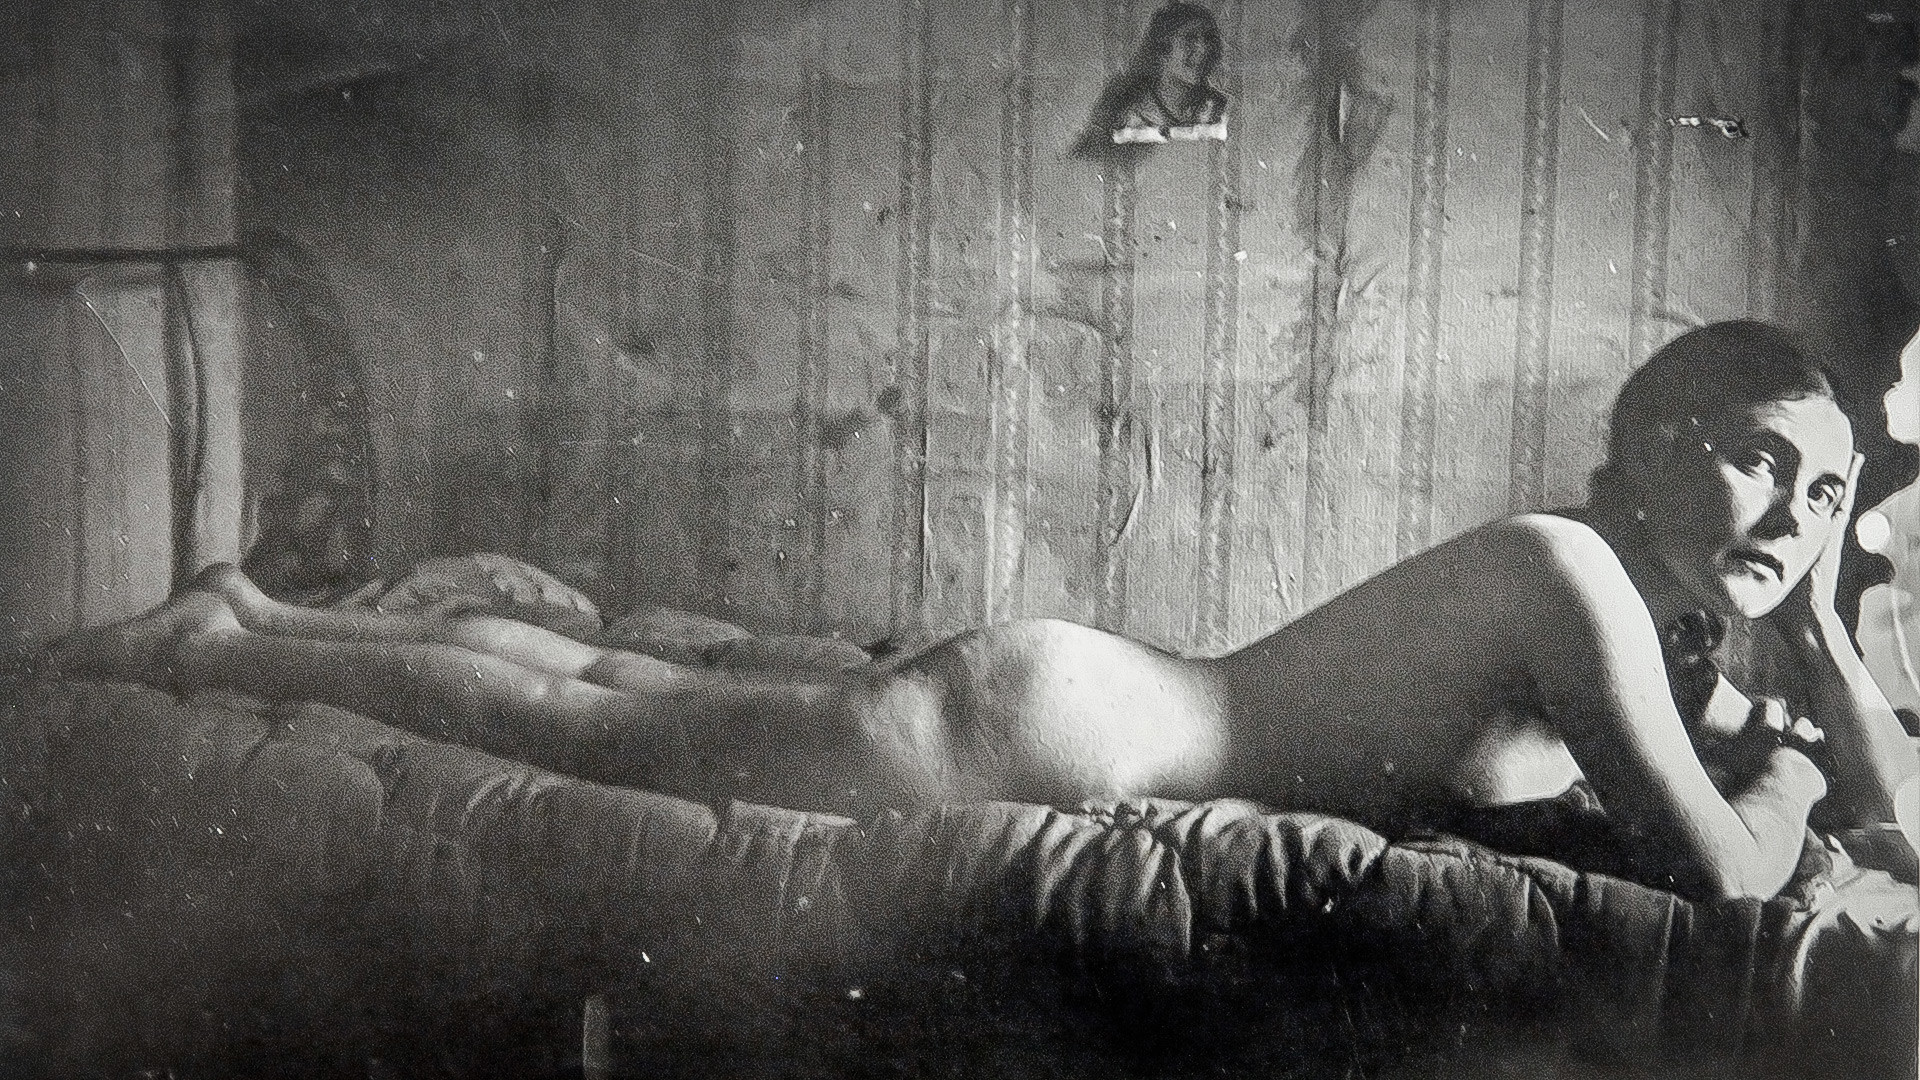 Sex symbol of the Soviet 1920s - Lilya Brik